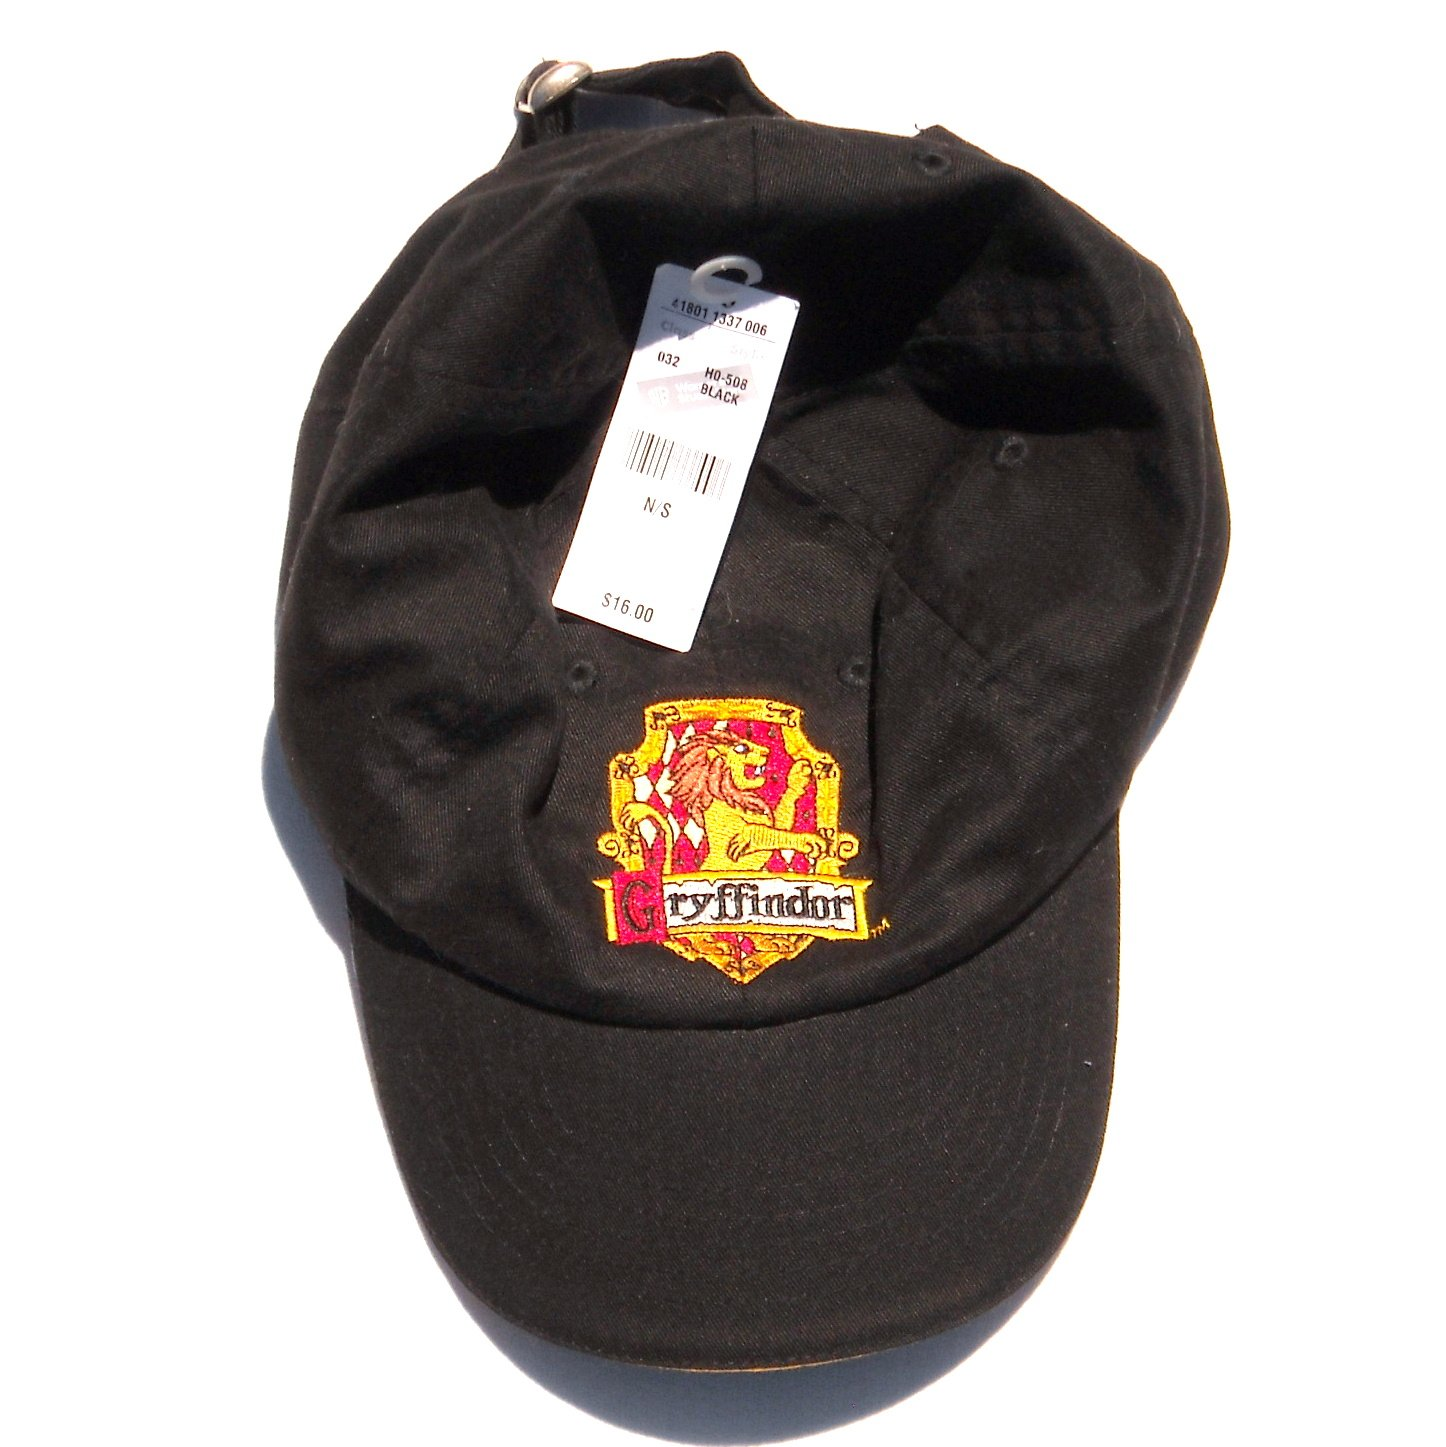 Harry Potter Warner Movie Studios Gryffindor Black Cap